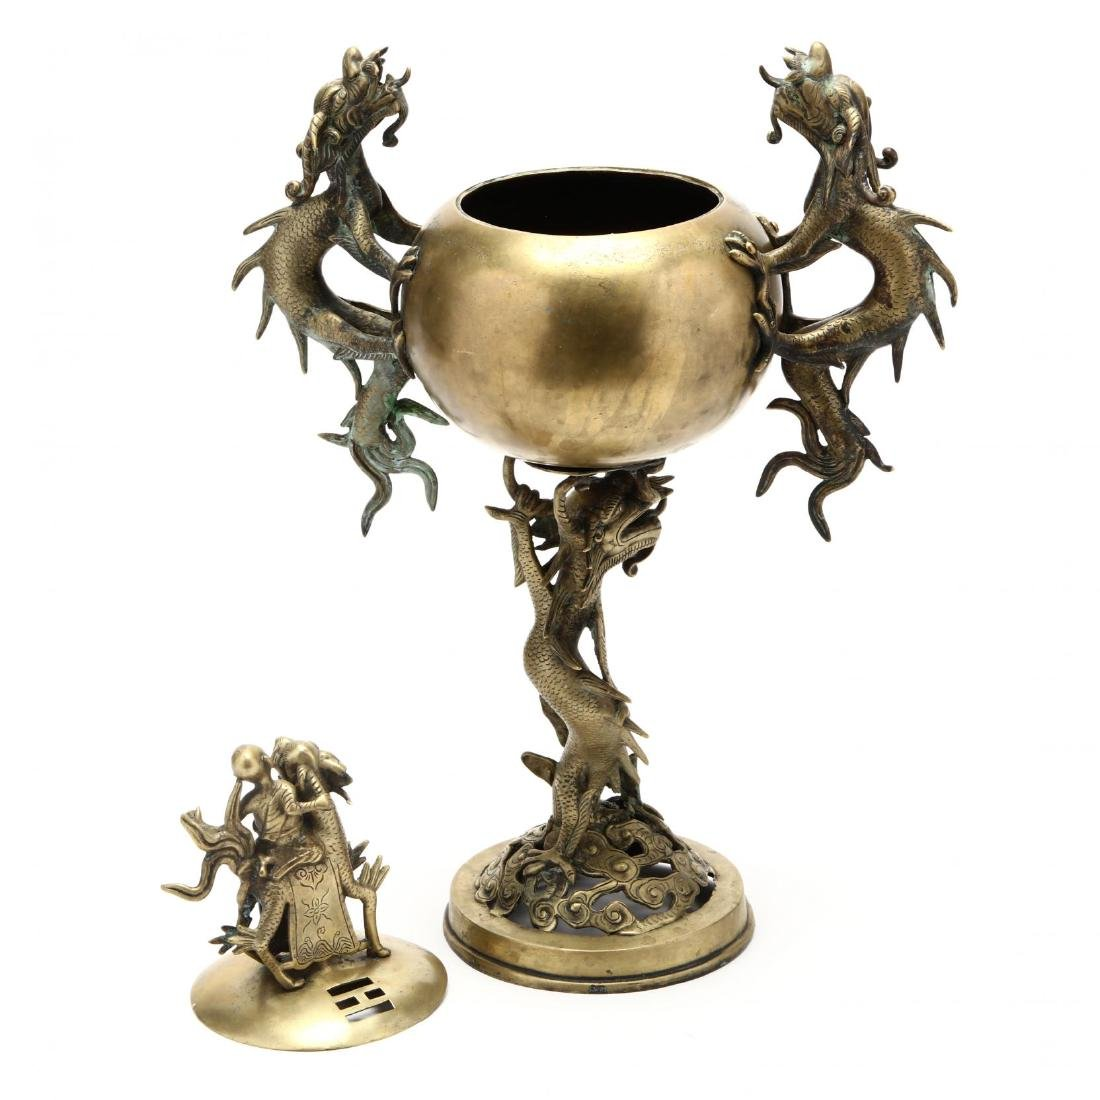 A Large Chinese Brass Incense Burner with Dragon - 4